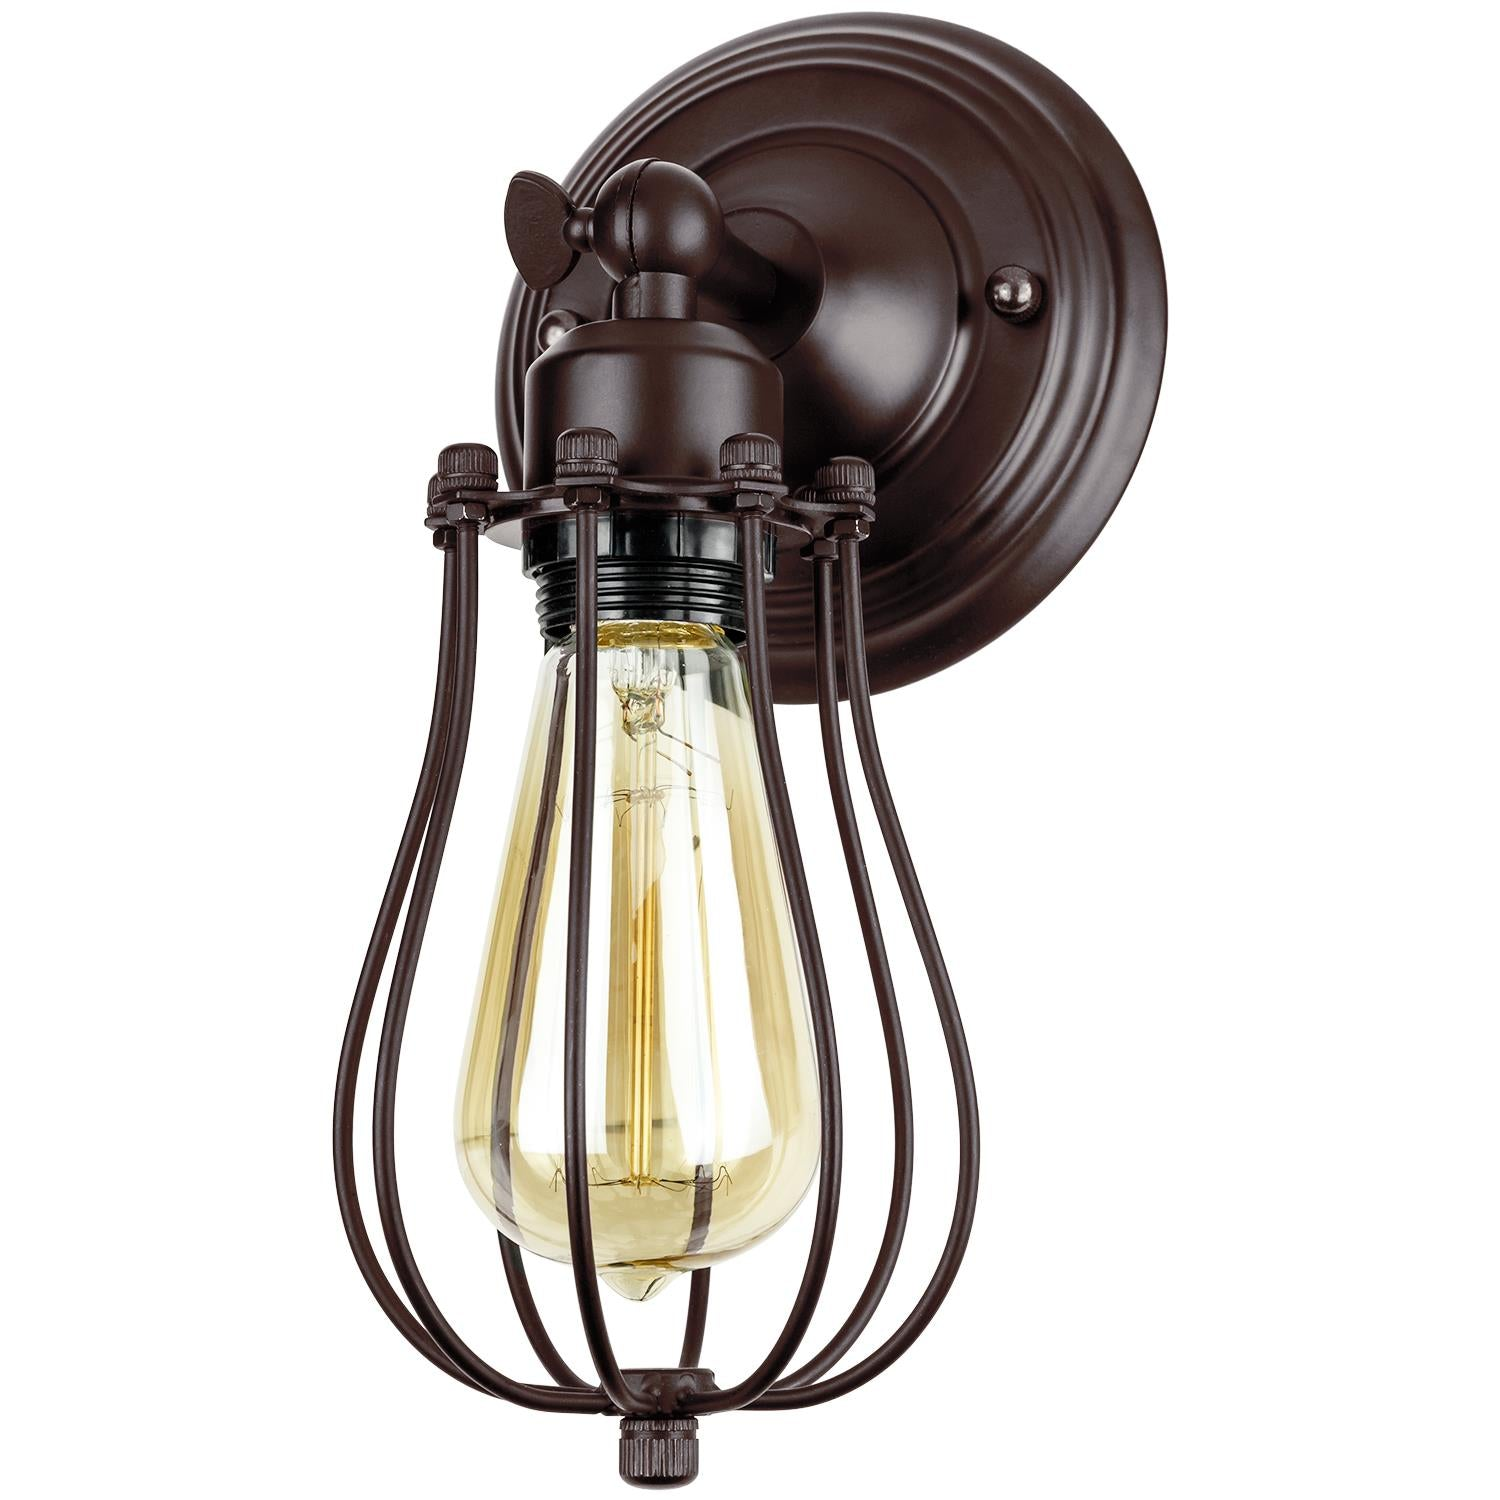 SUNLITE 07042-SU E26 Cage Vintage Oil Bronze Wall Lighting Fixture